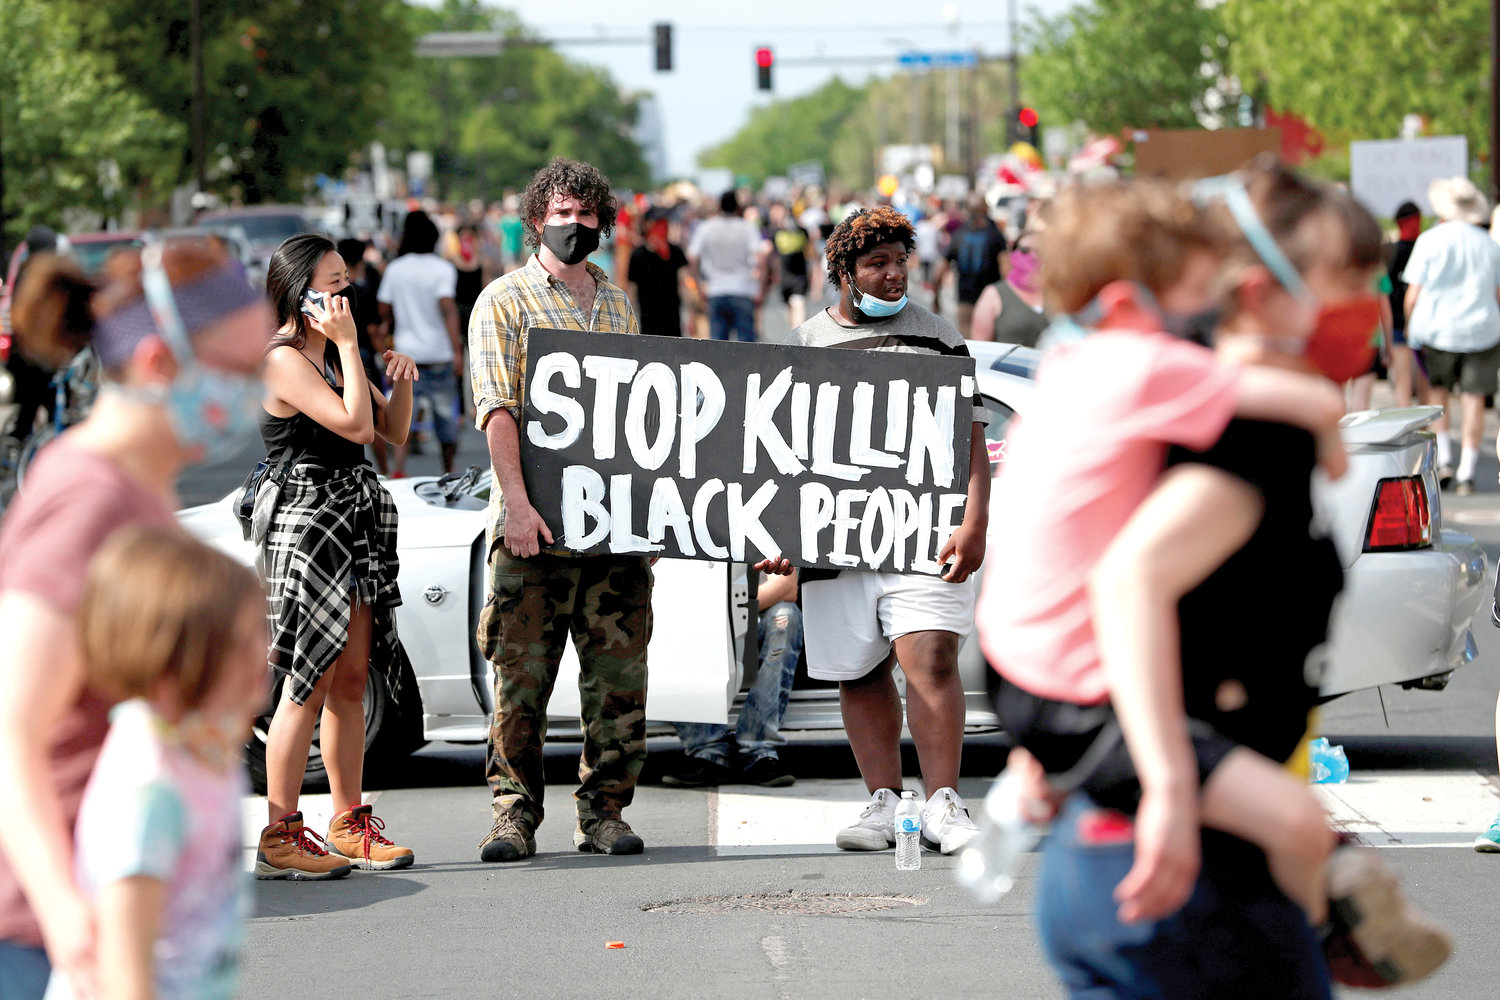 Protesters in Minneapolis, top, gather at the scene May 27 where George Floyd, an unarmed black man, was pinned down by a police officer kneeling on his neck and was later declared dead at a hospital May 25.